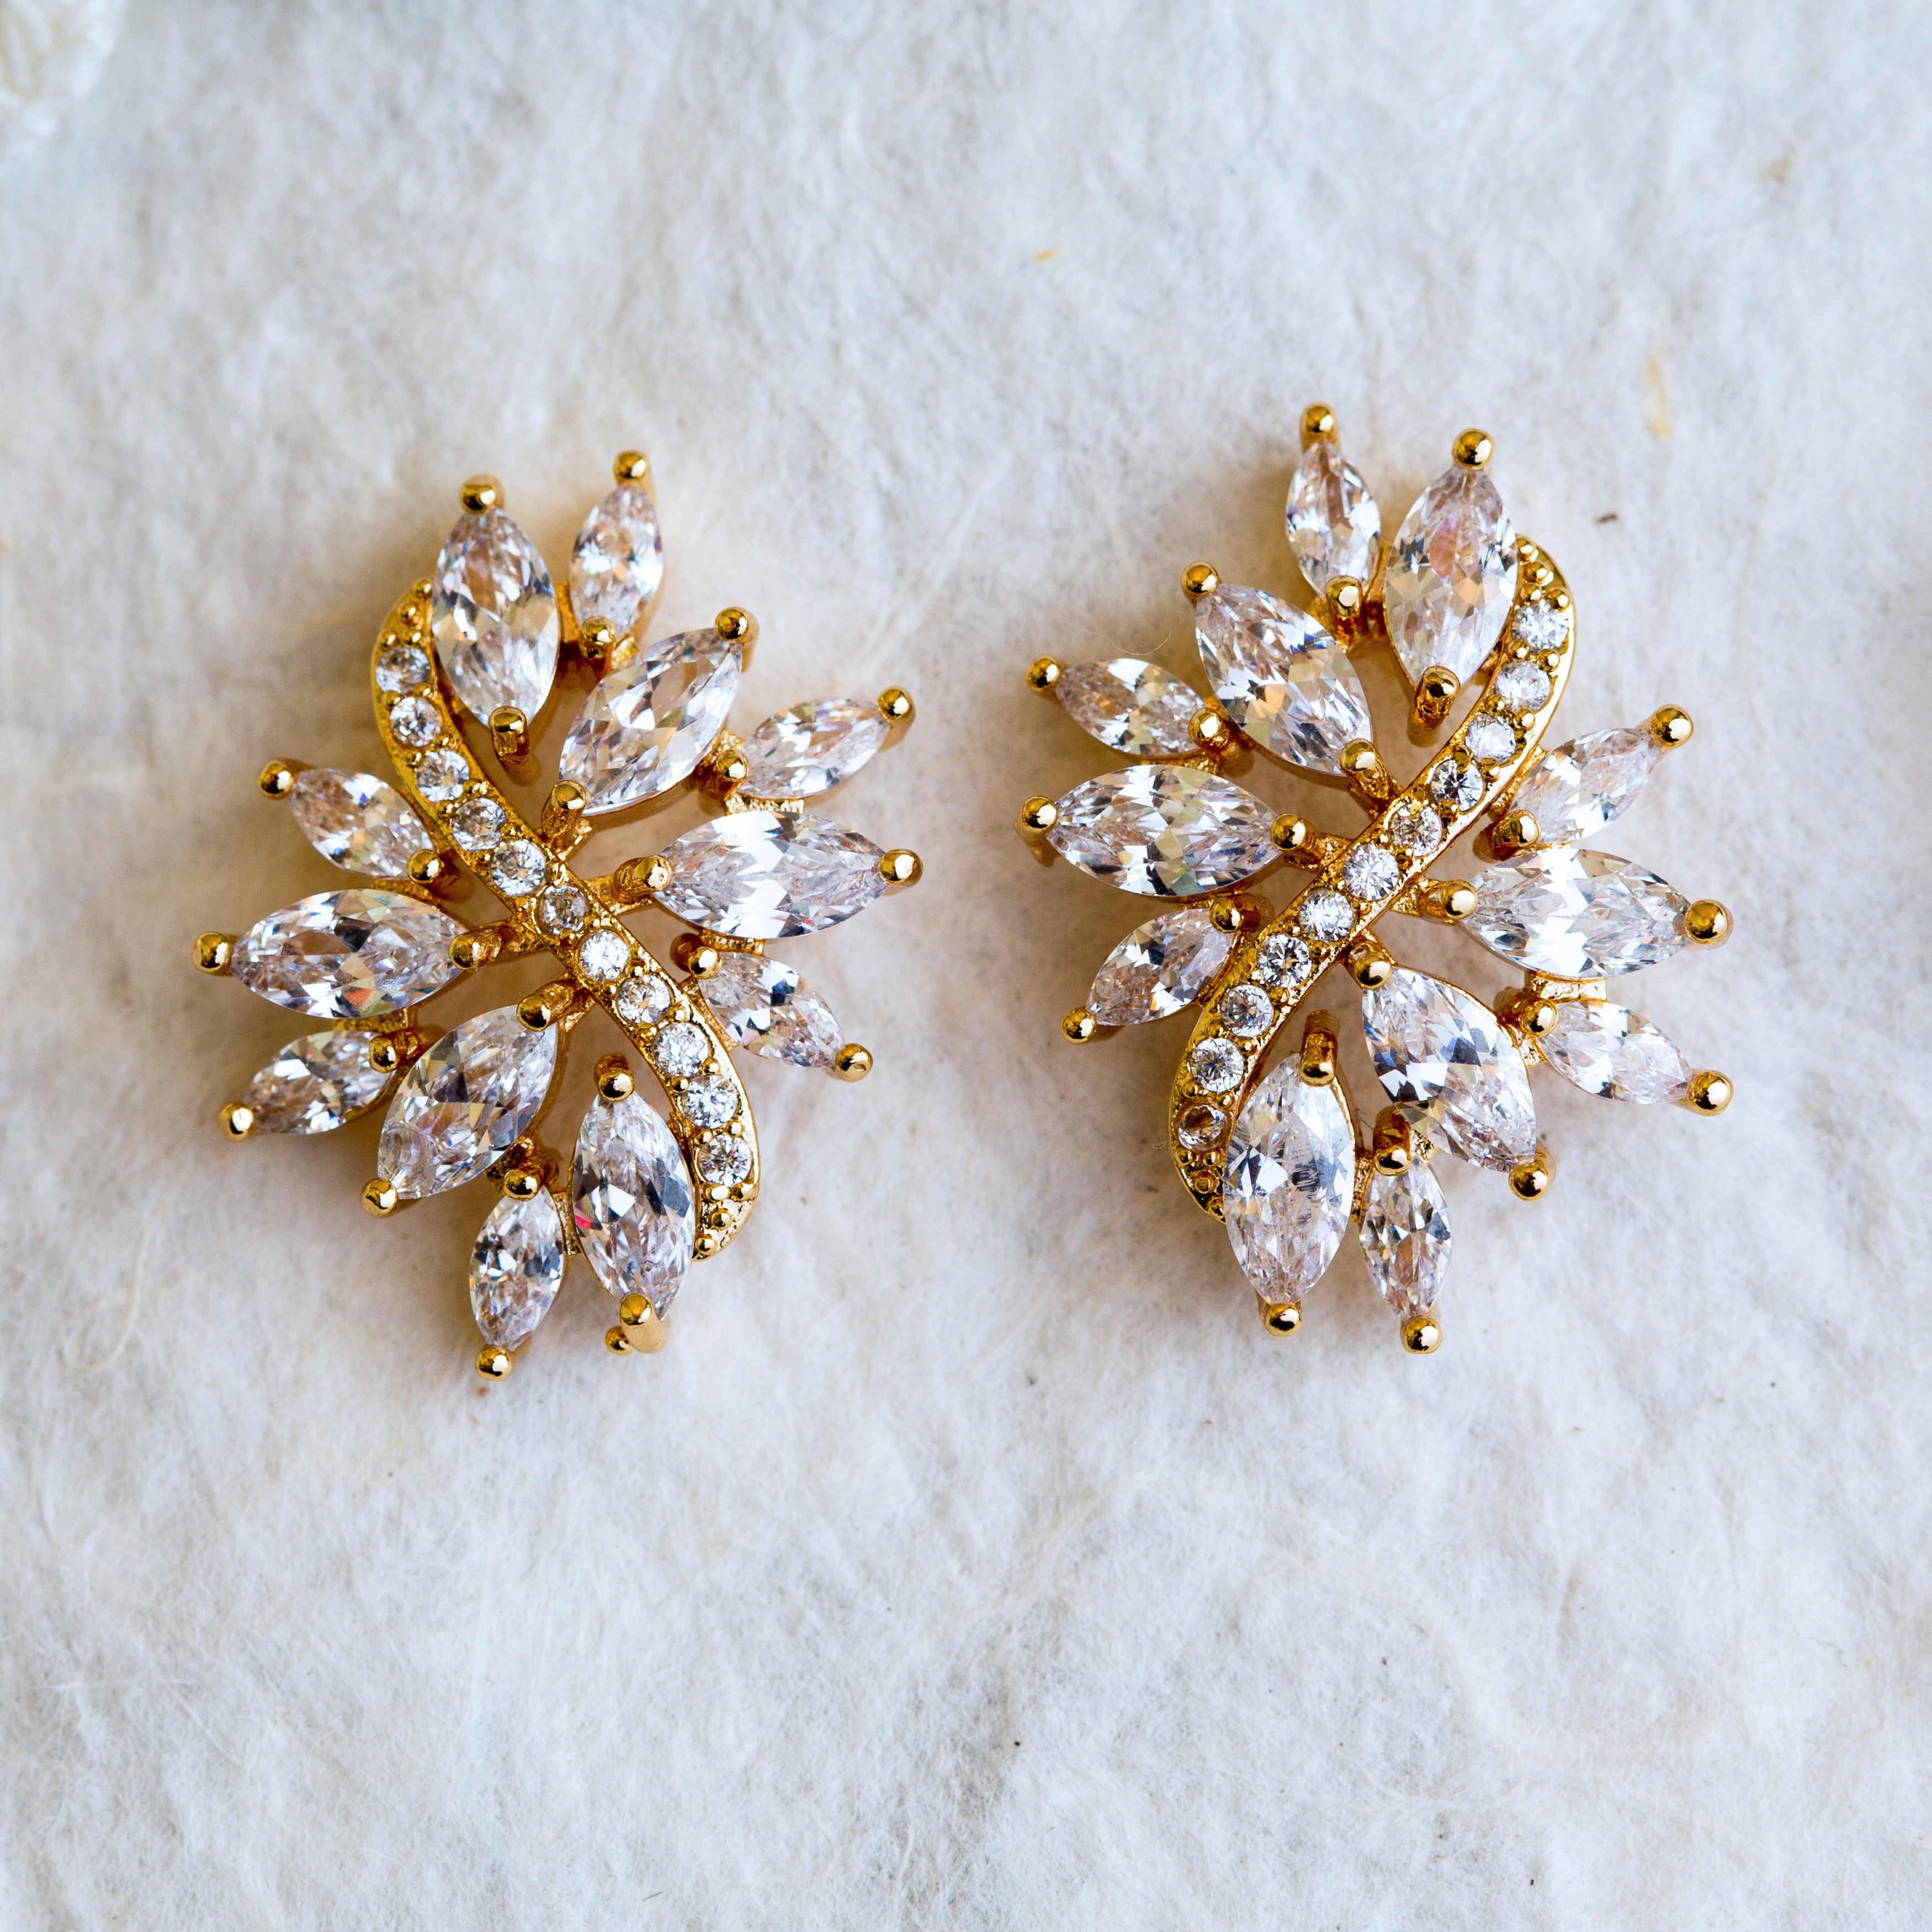 Sarah gold crystal earrings